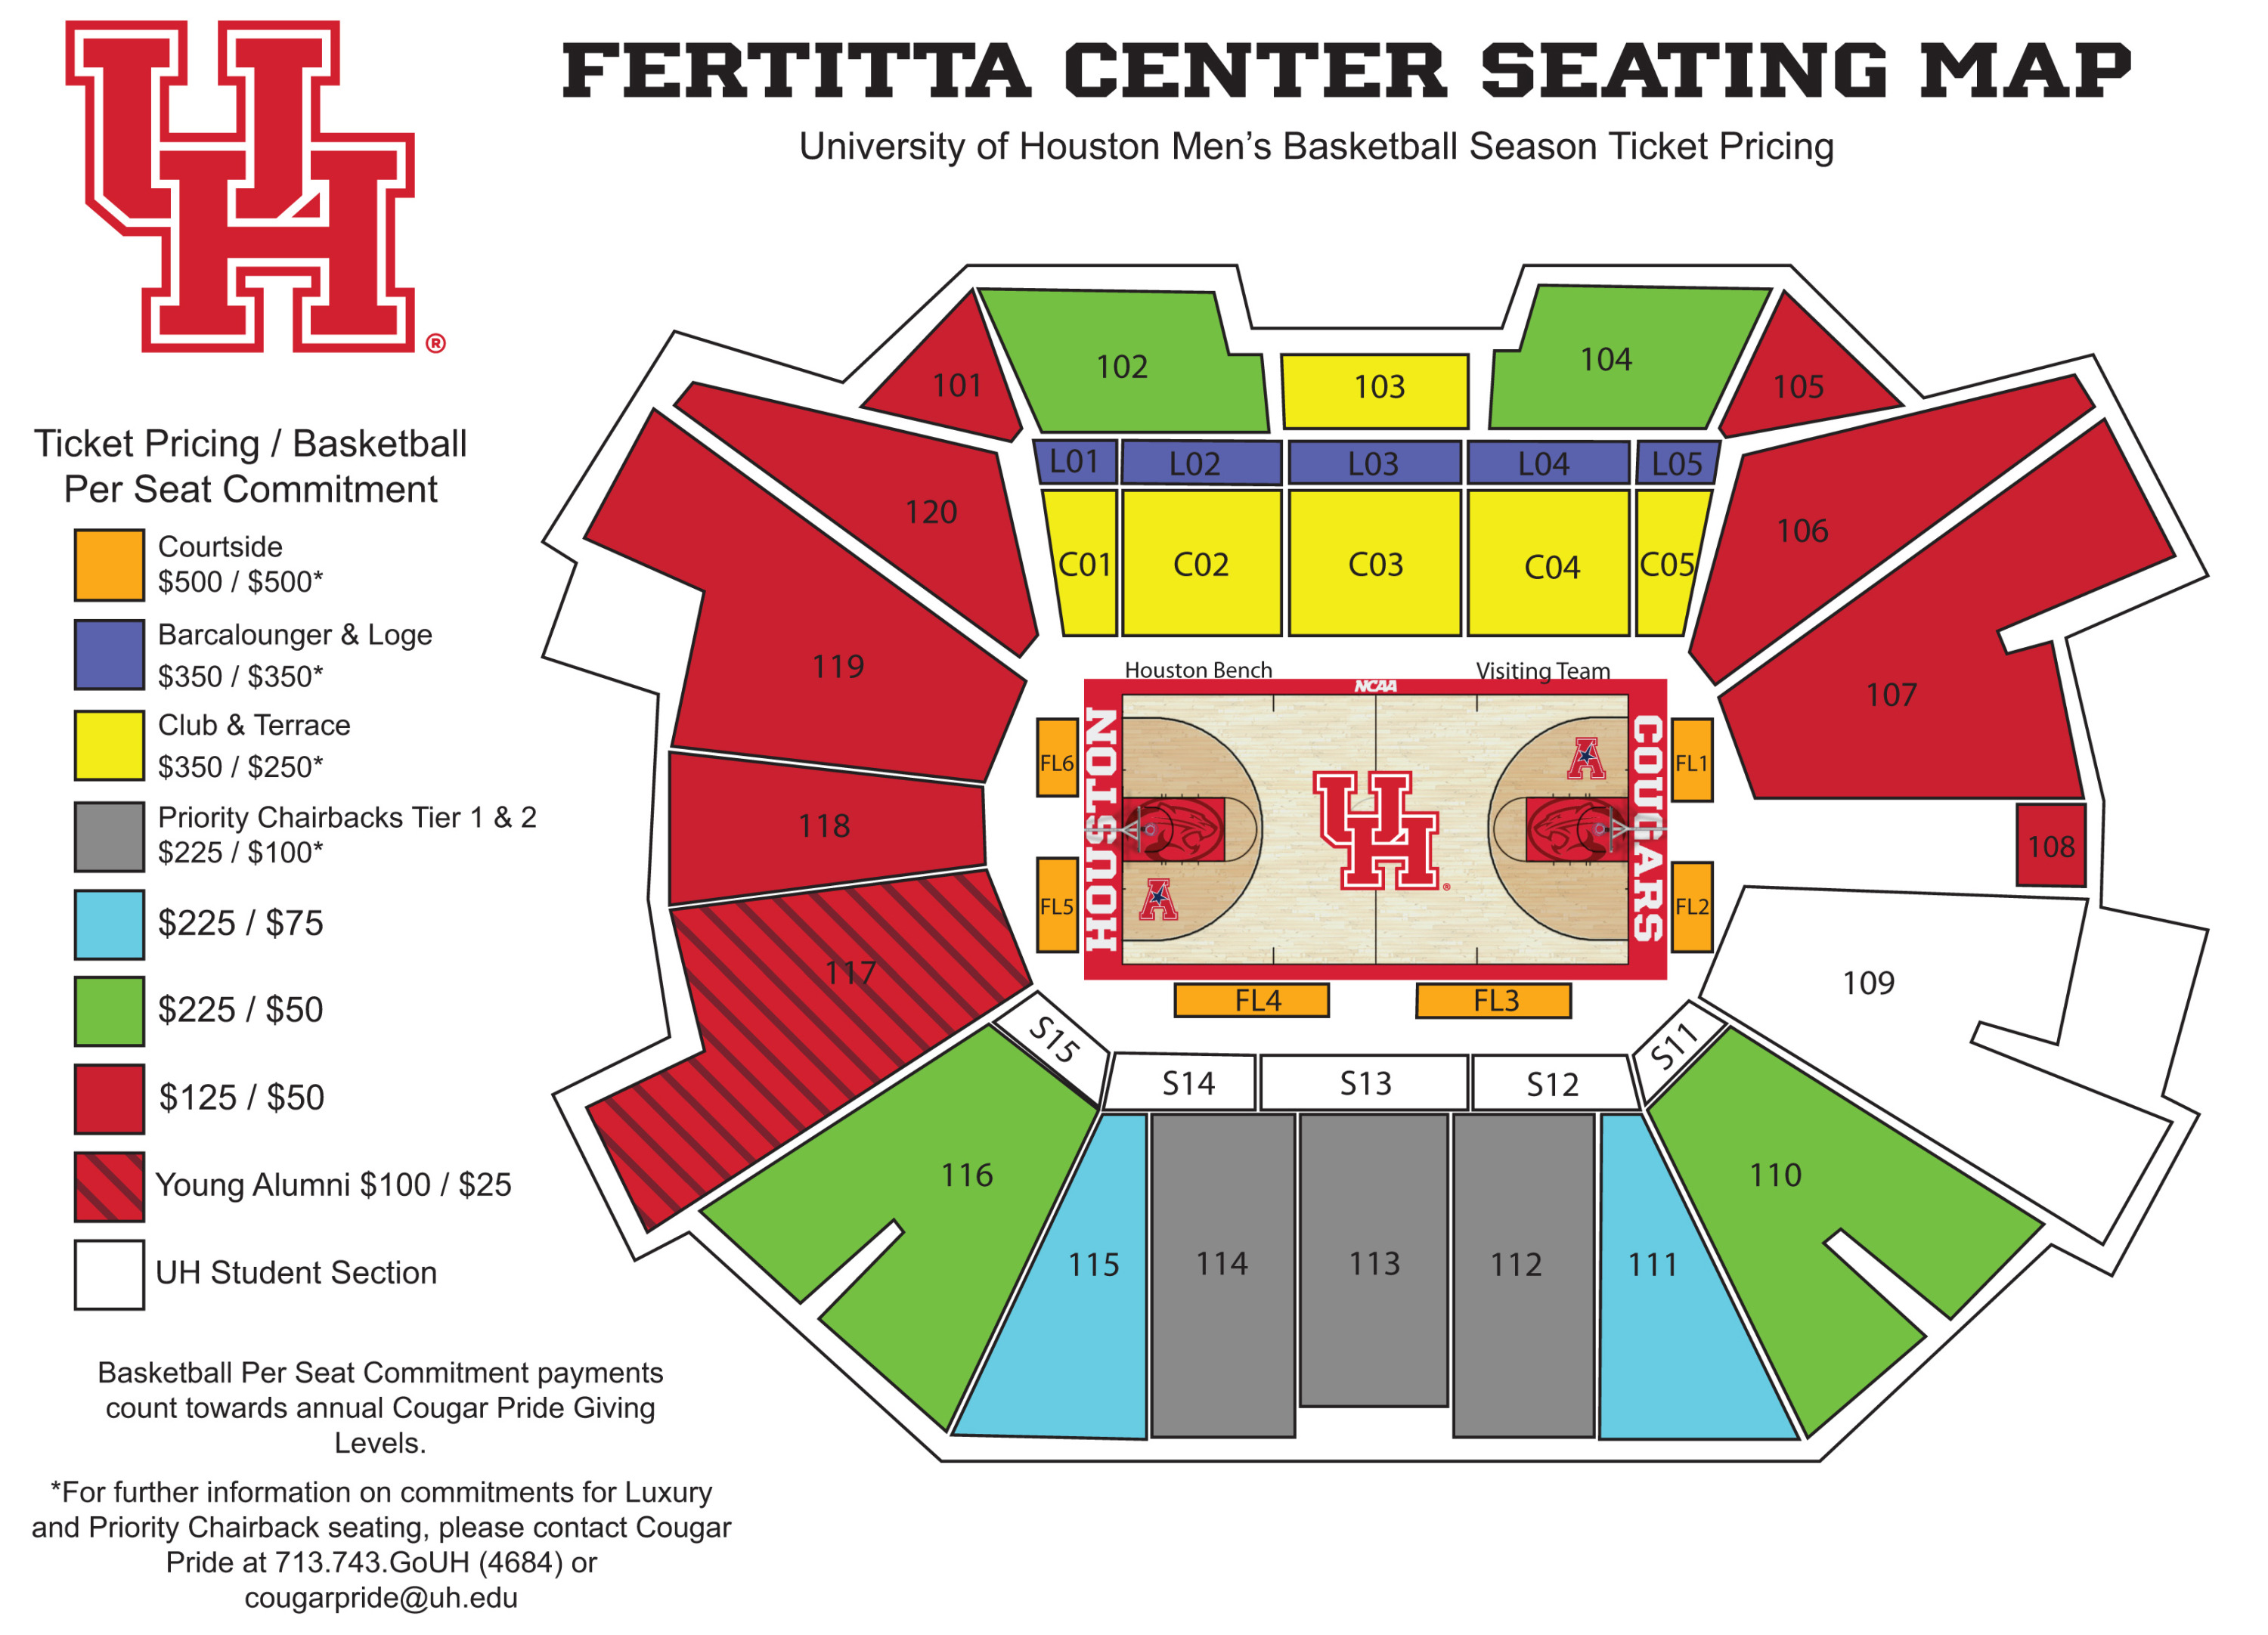 Fera Center Season-Ticket Pricing - University of ... on york college campus map, uhv campus map, main campus map, st campus map, va campus map, ul campus map, jd campus map, phoenix college campus map, uhd campus map, unh campus map, ge campus map, hawaii campus map, fh campus map, uhcl bayou building map, u of h map, ma campus map, uk campus map, honolulu community college campus map, morehead campus map, uw campus map,